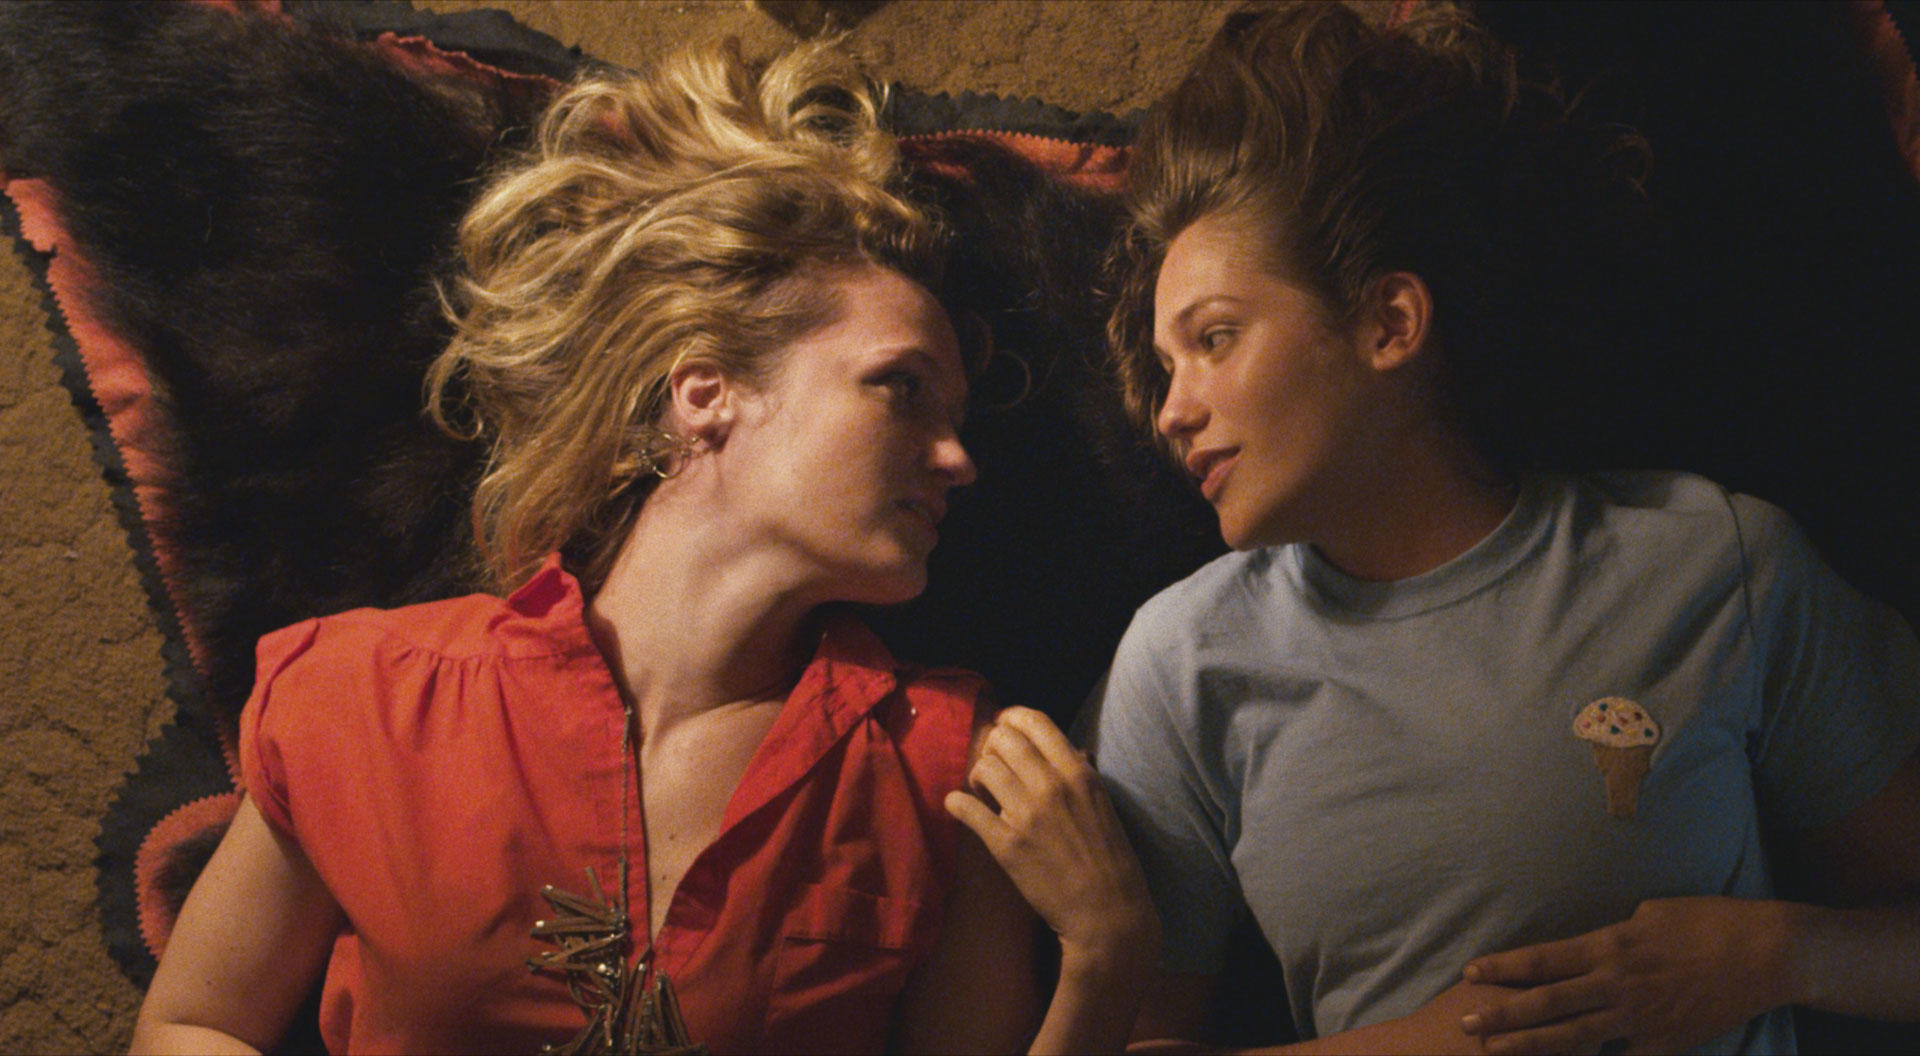 Filmes De Lebicas intended for awol' shows the tender and tough reality of rural life   wuwm